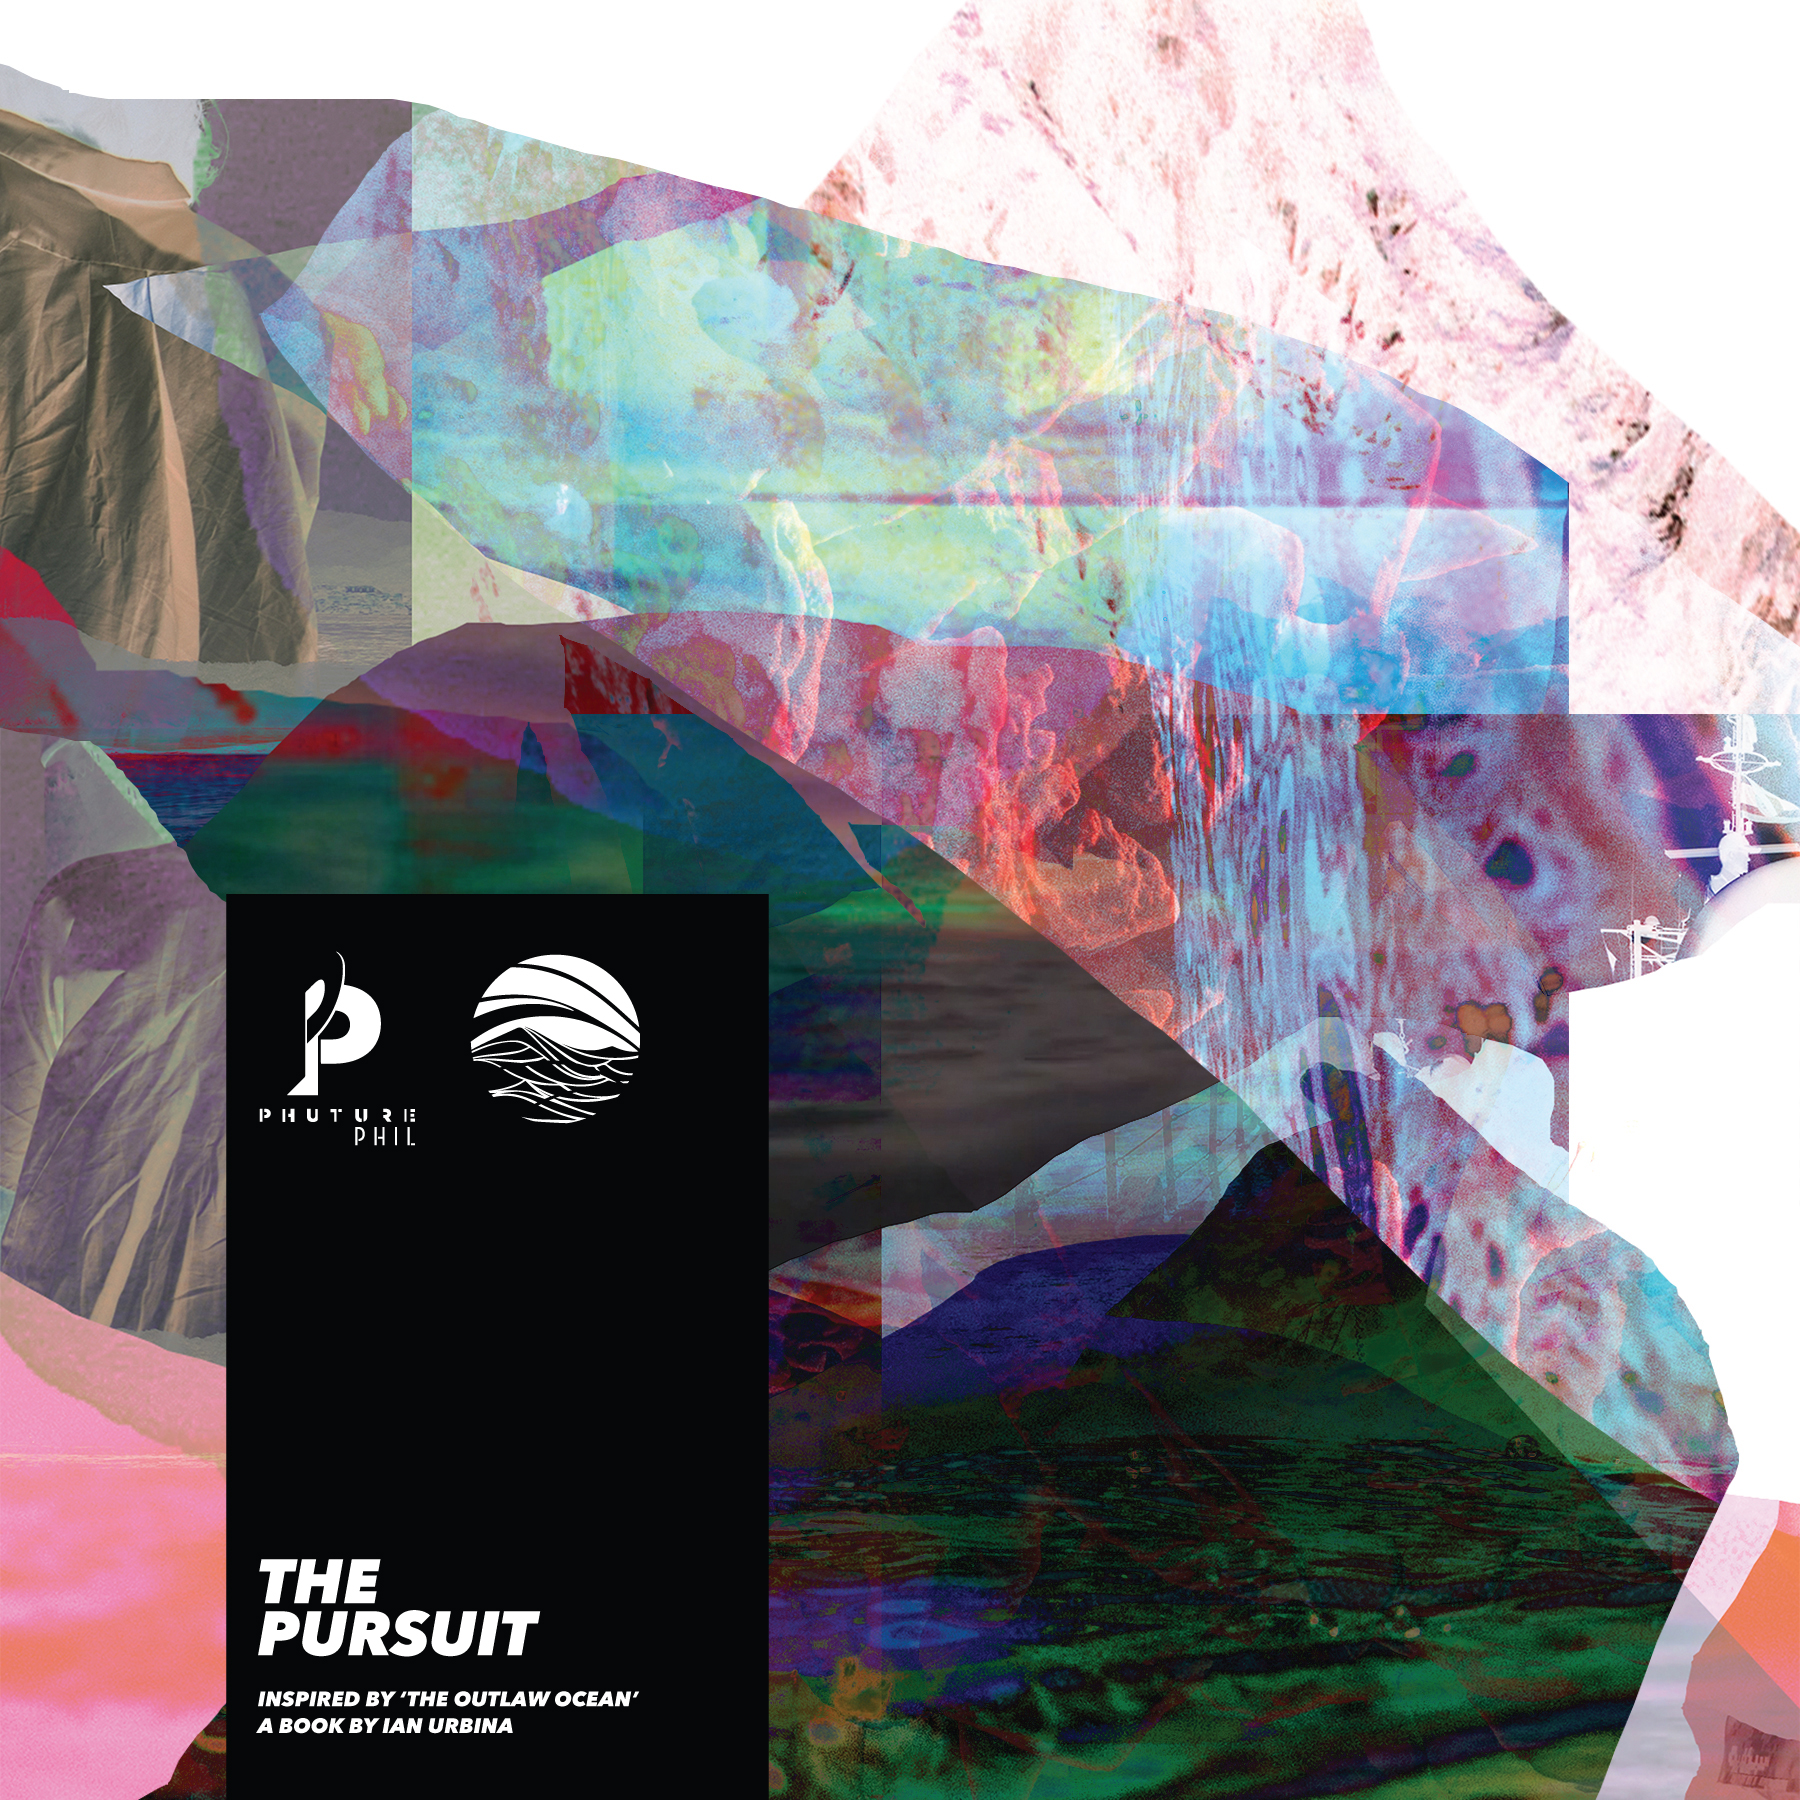 PhuturePhil The Pursuit Album Cover Artwork.